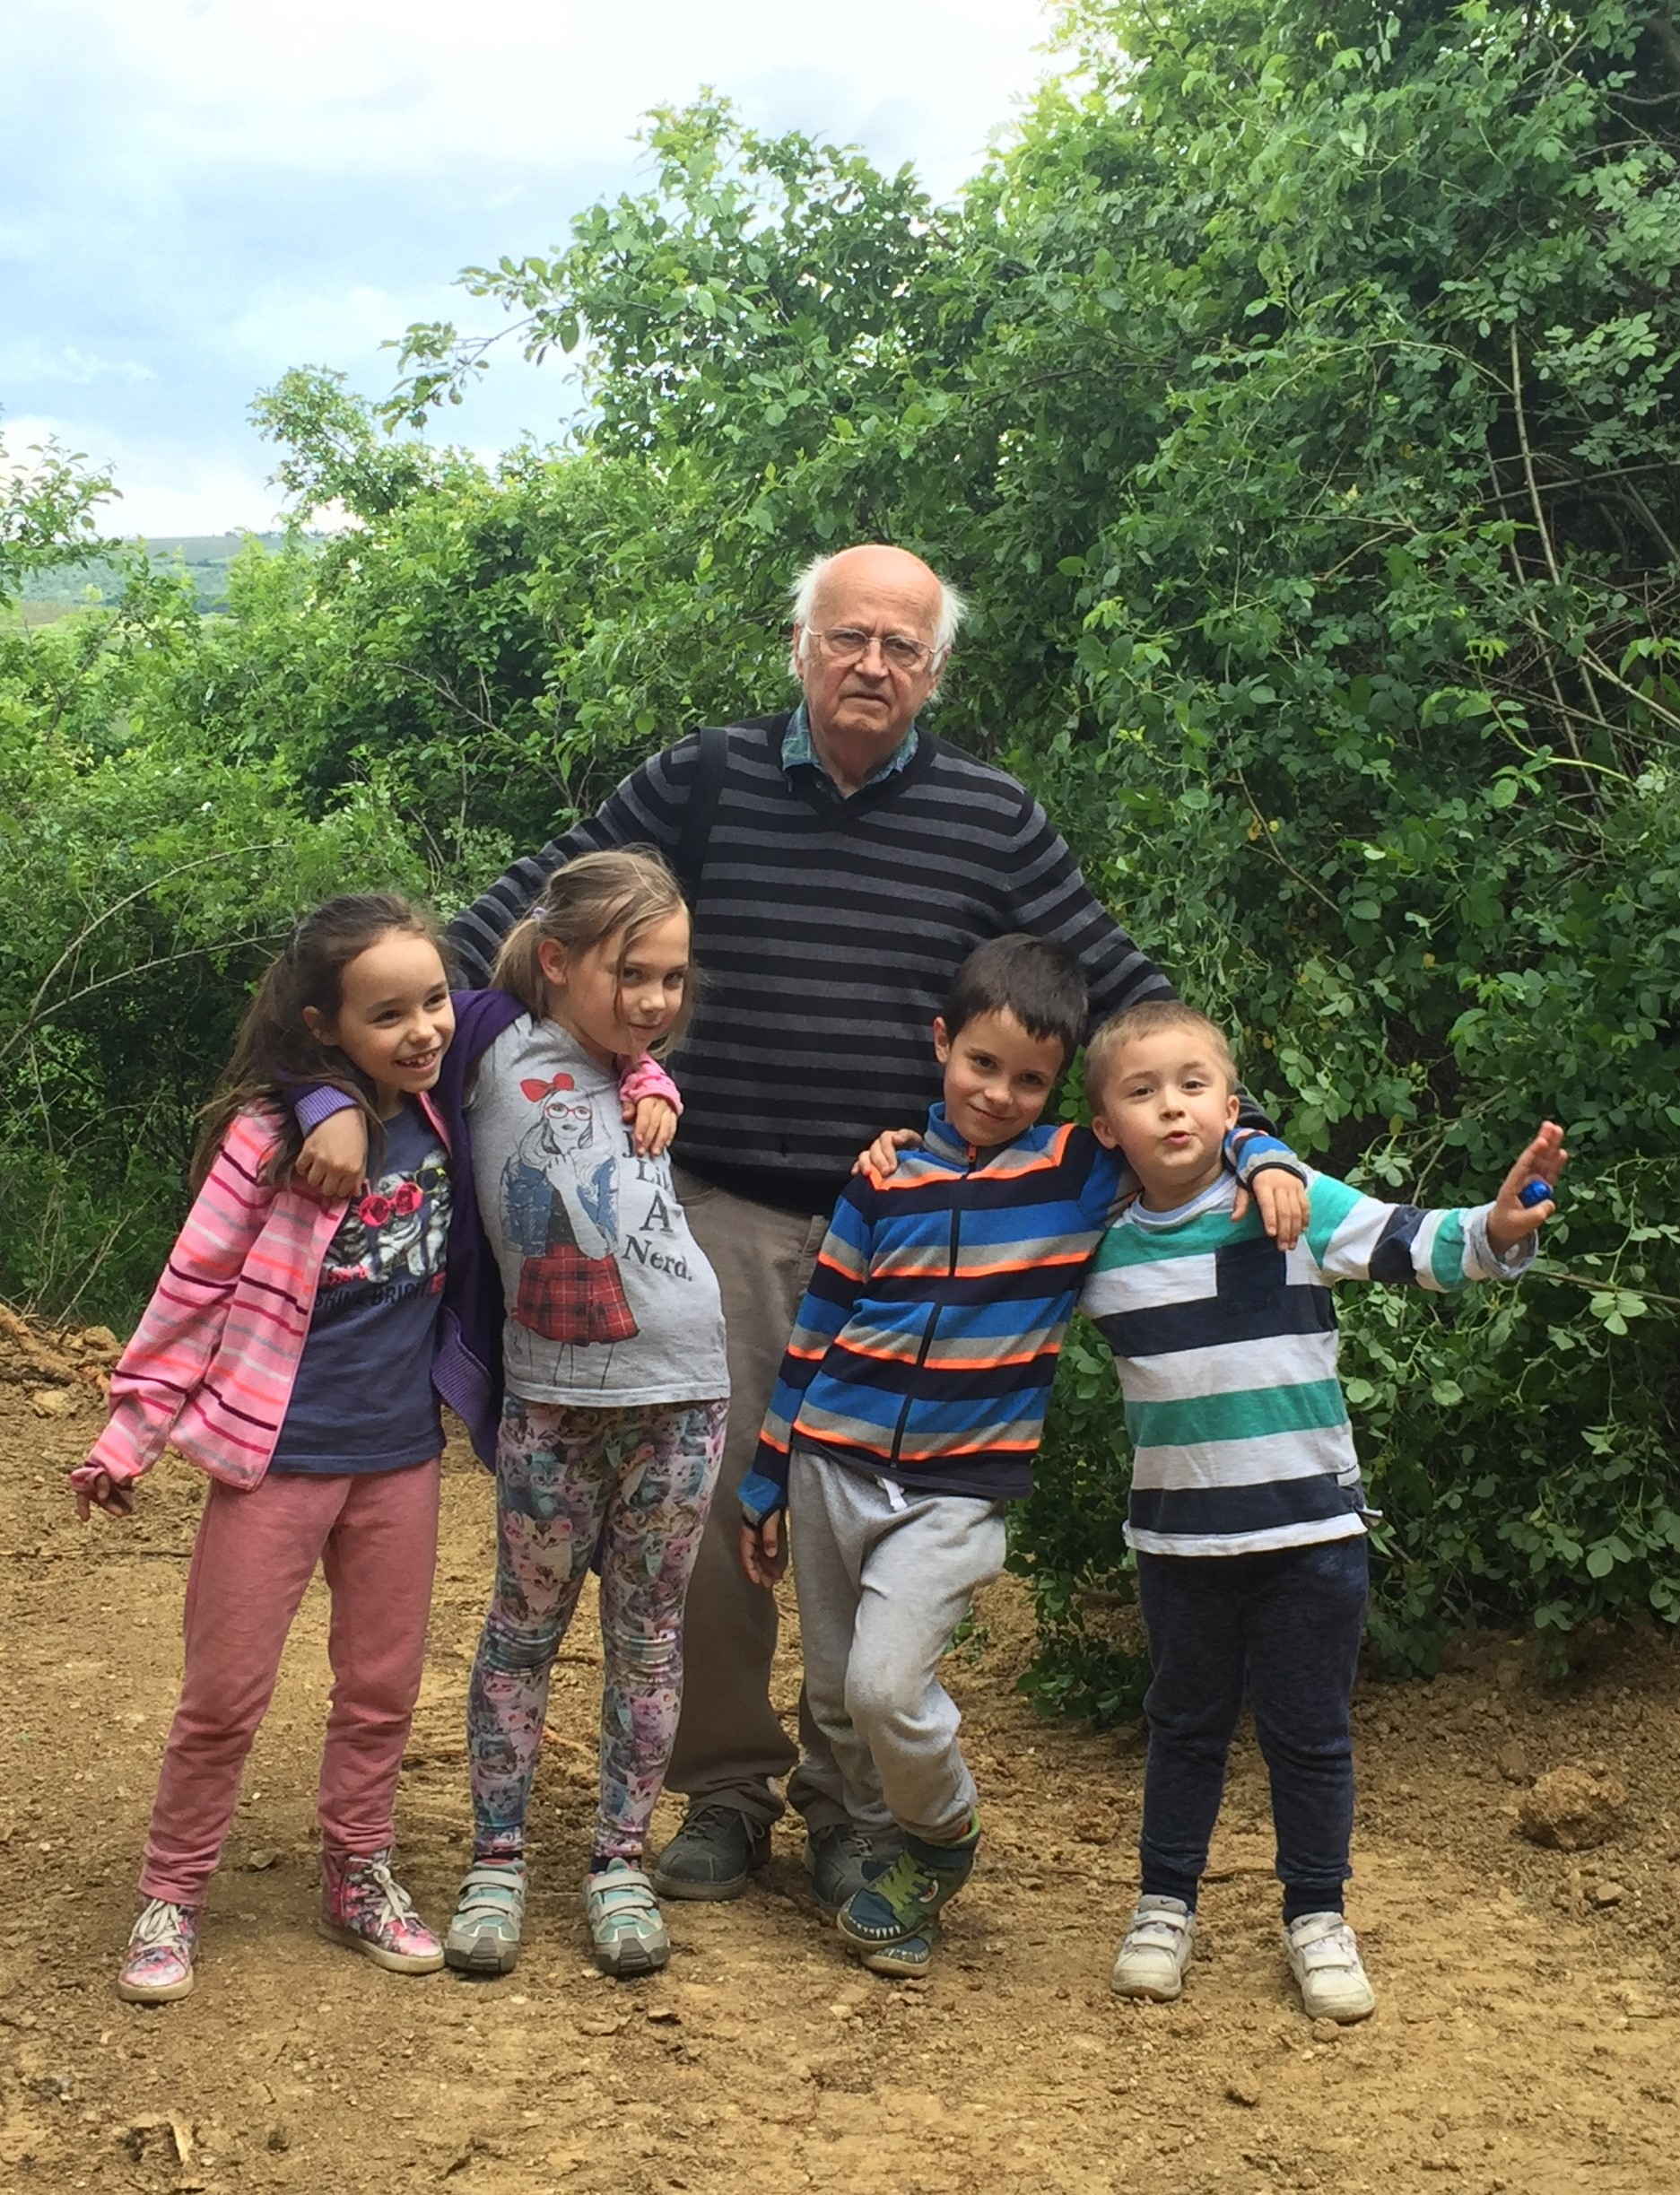 Dziadek with grandchildren 2017